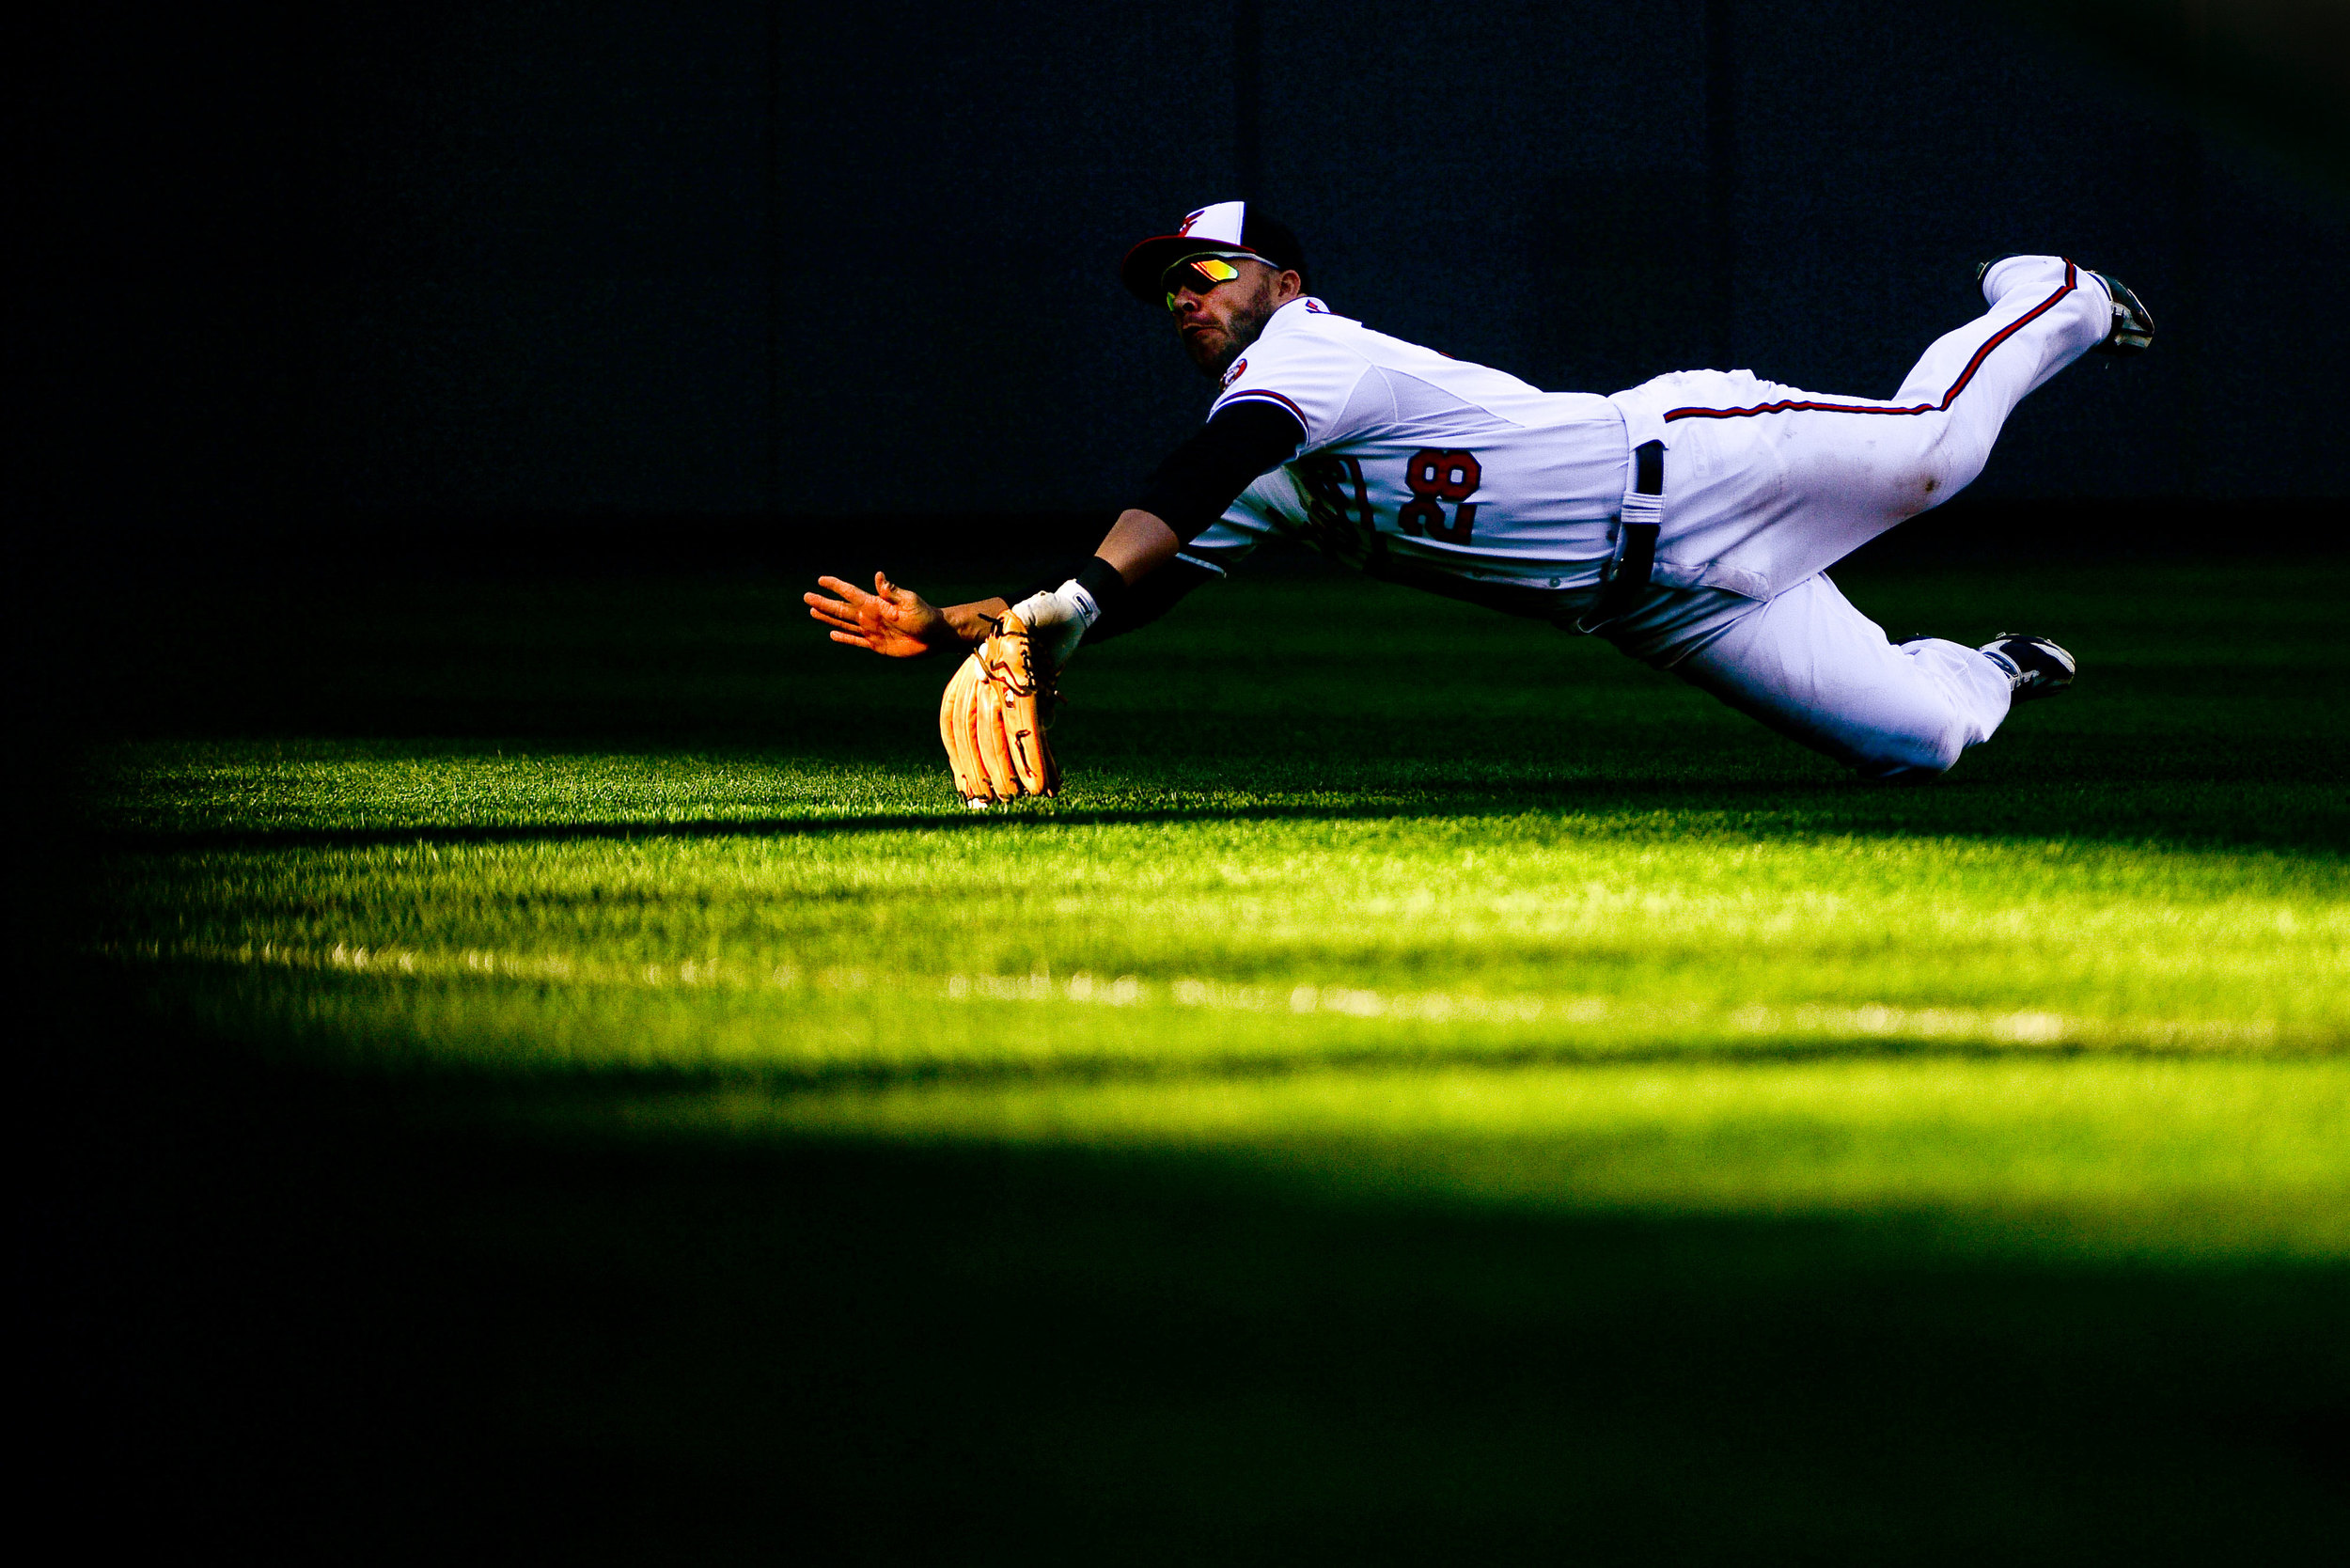 Baltimore Orioles left fielder Steve Pearce attempts to dive for a ball  during their last home game of the 2013 season on Sept. 29, 2013 in  Baltimore, Md.